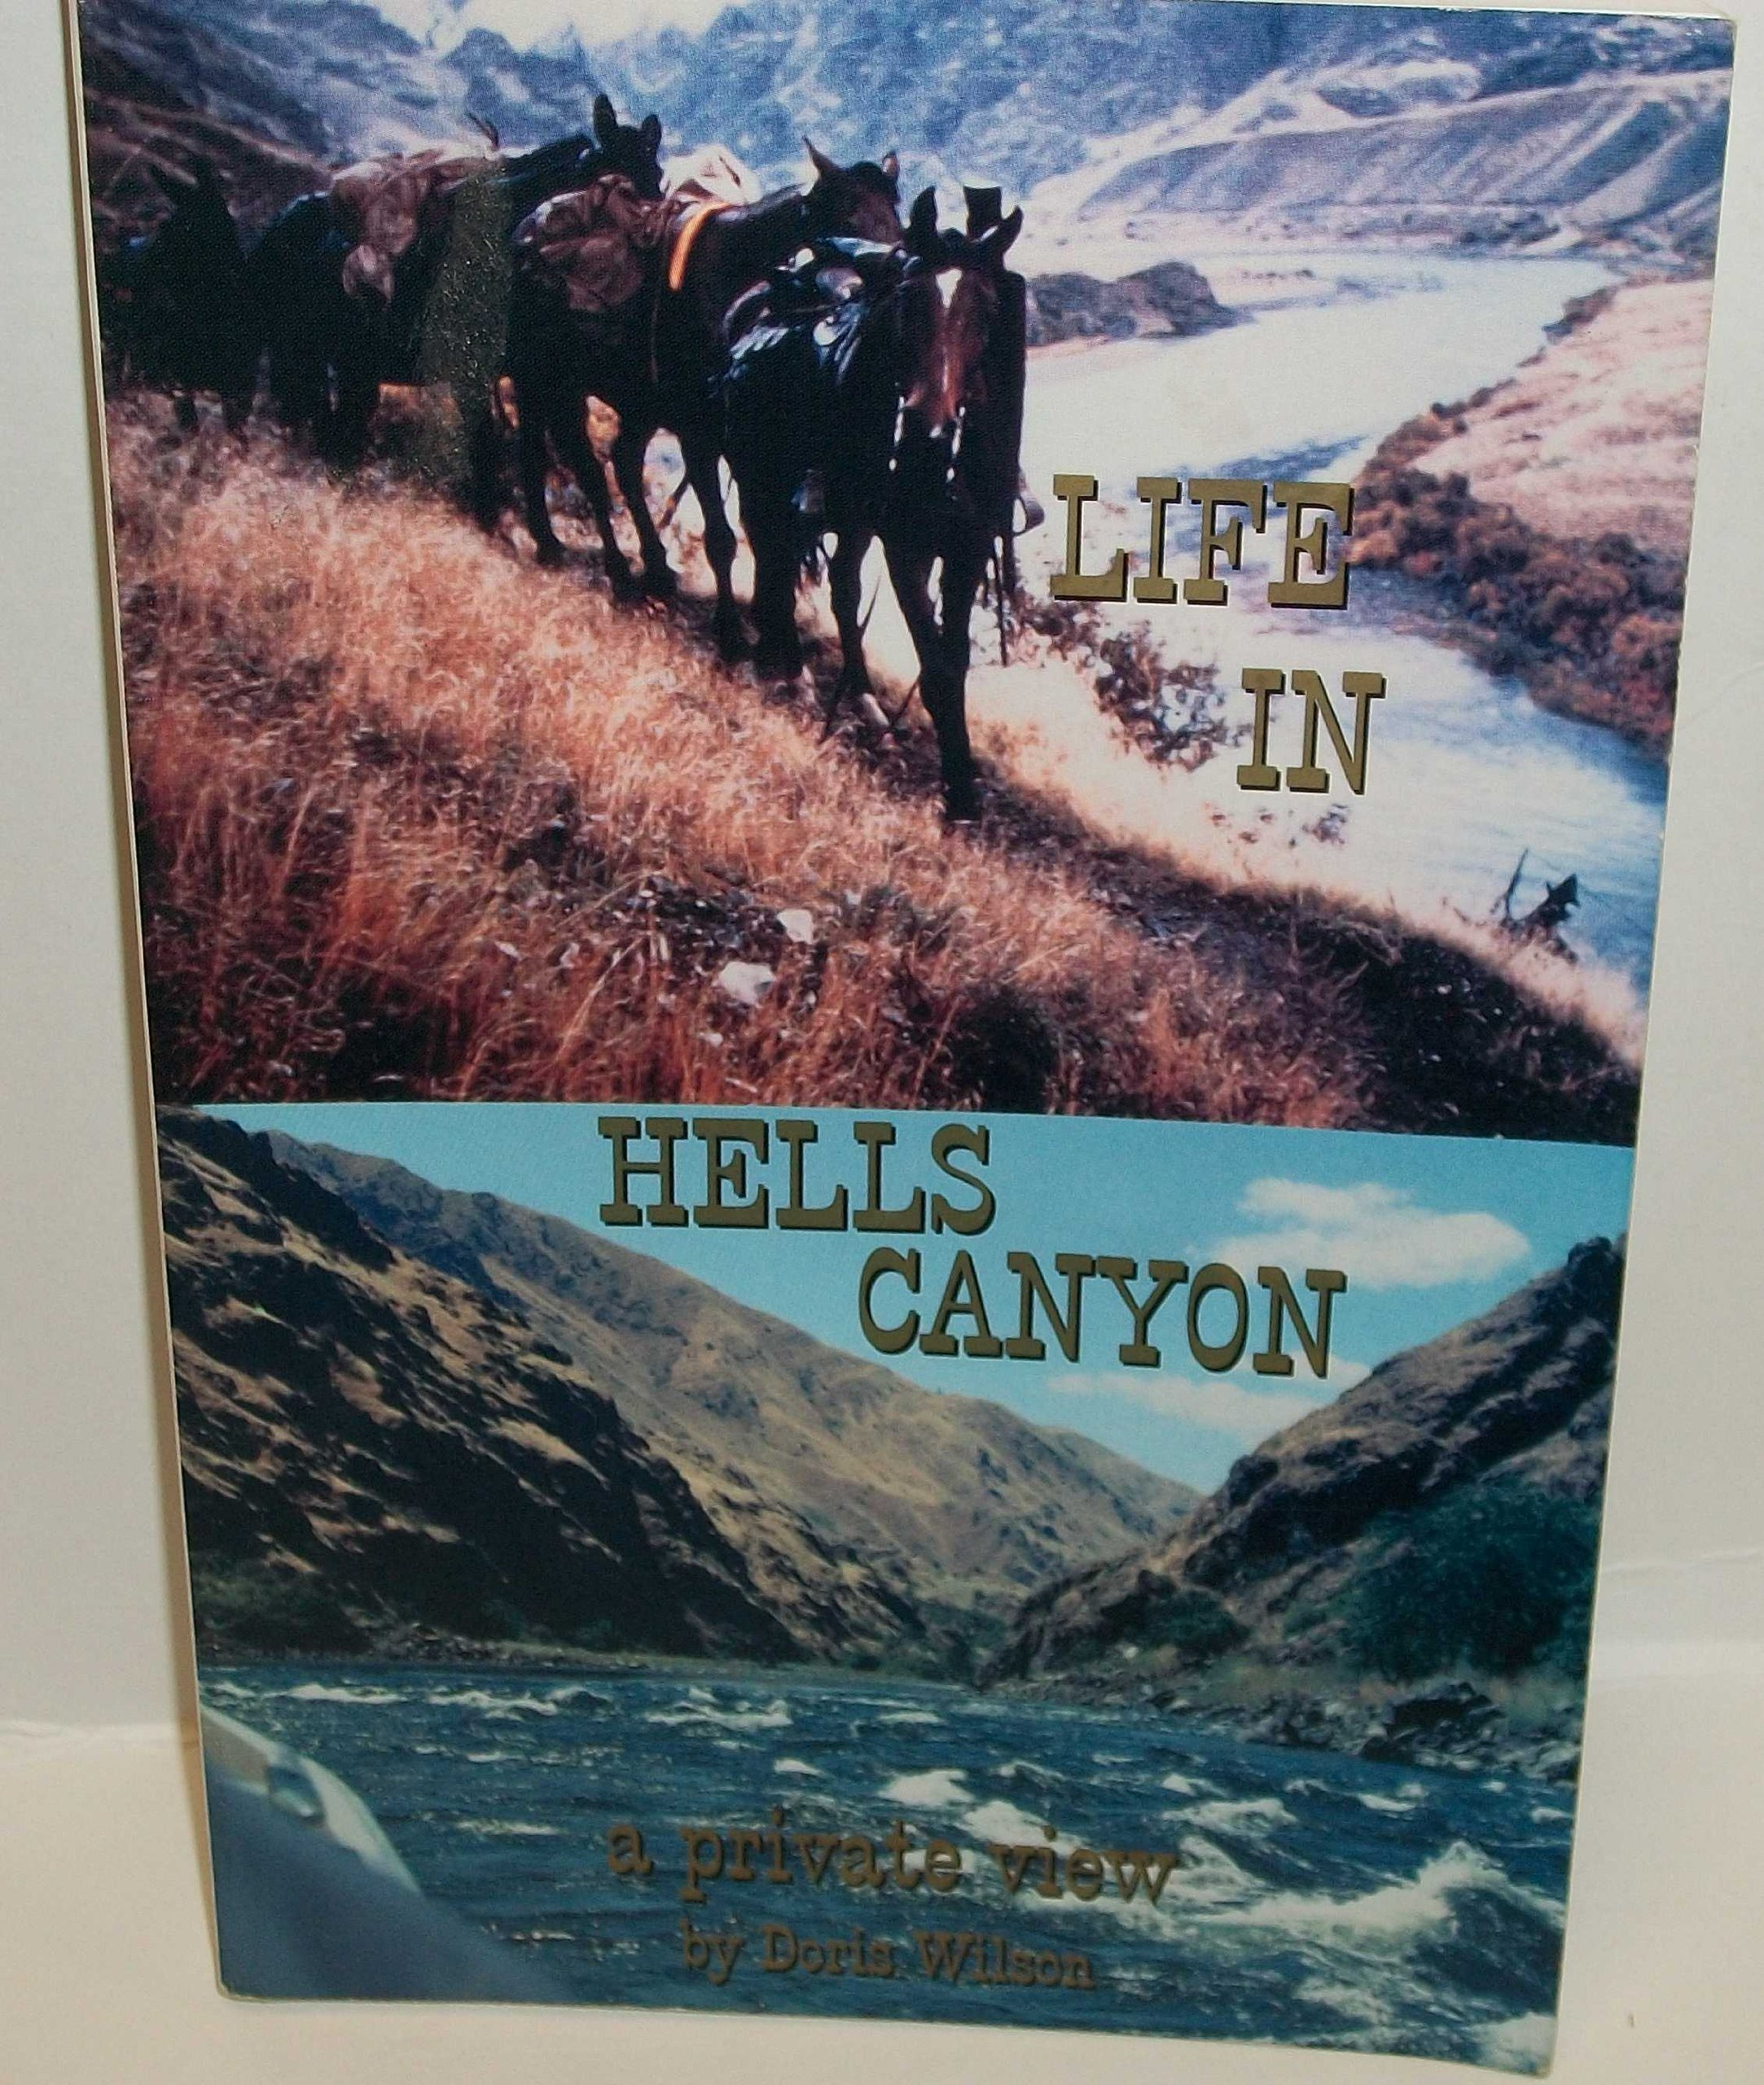 Life in Hells Canyon: A private view, Wilson, Doris